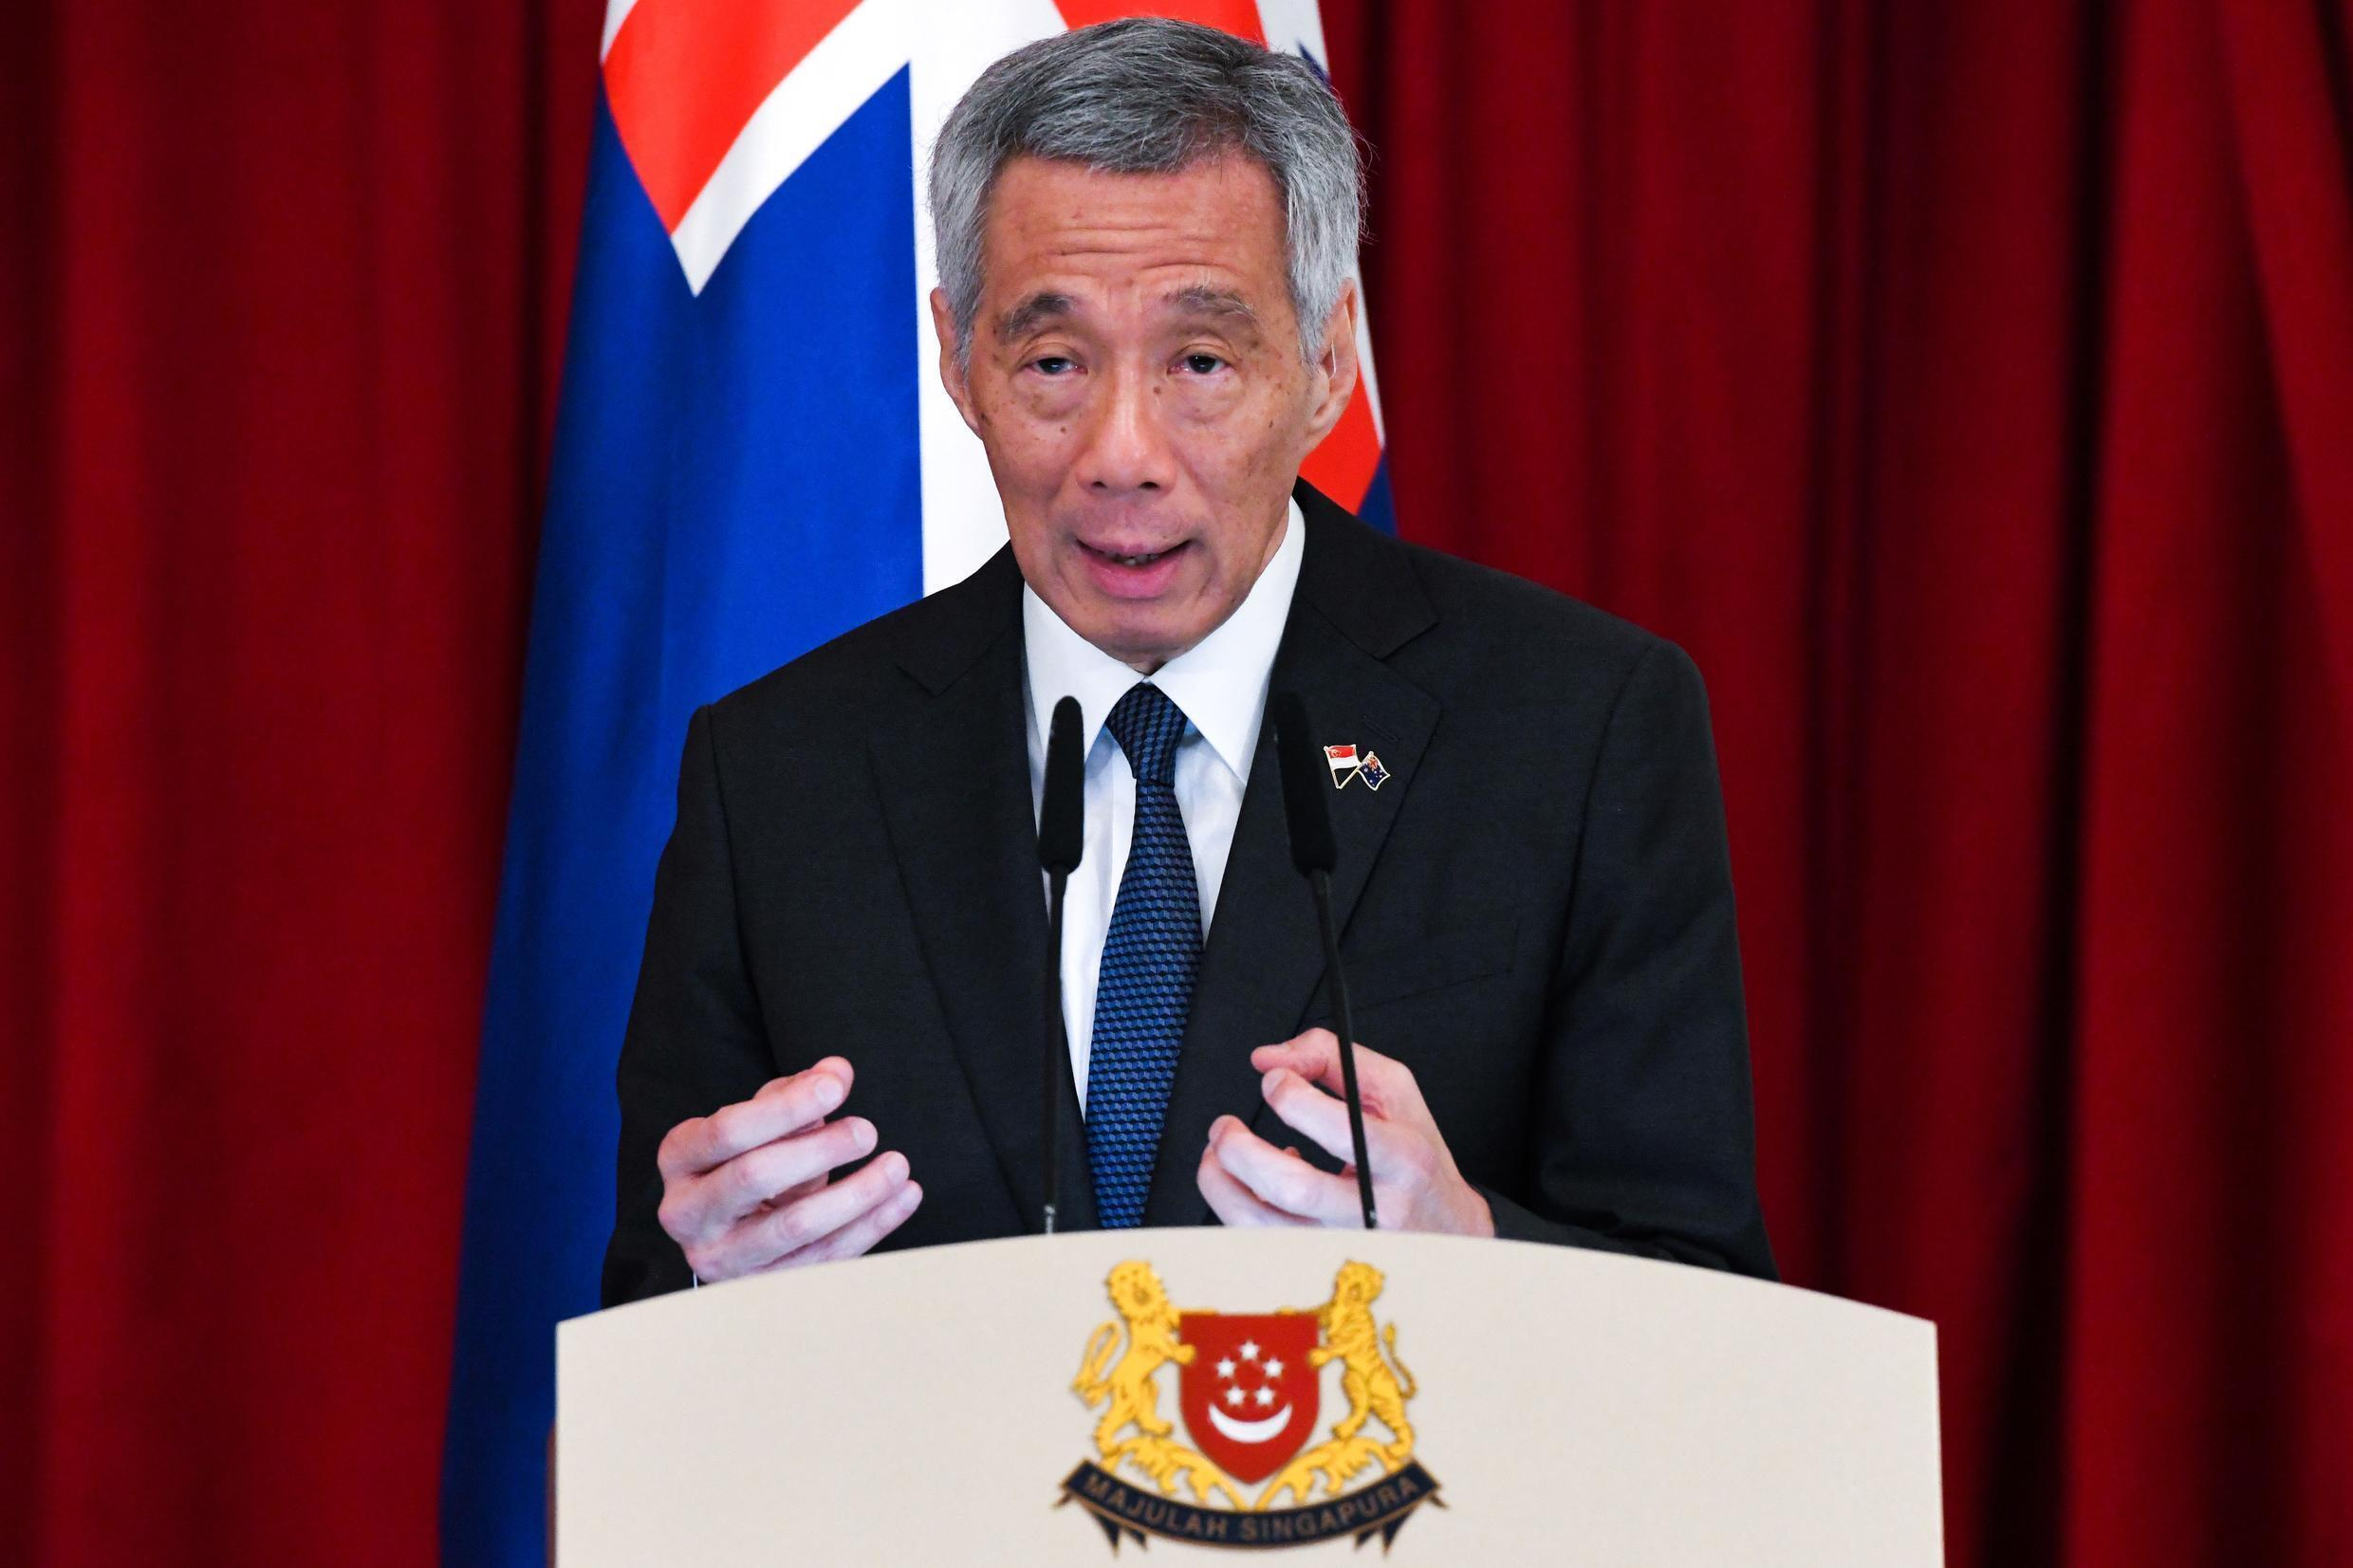 Singapore's Prime Minister Lee Hsien Loong has described the city-state as a 'safe harbour' amid political instability elsewhere